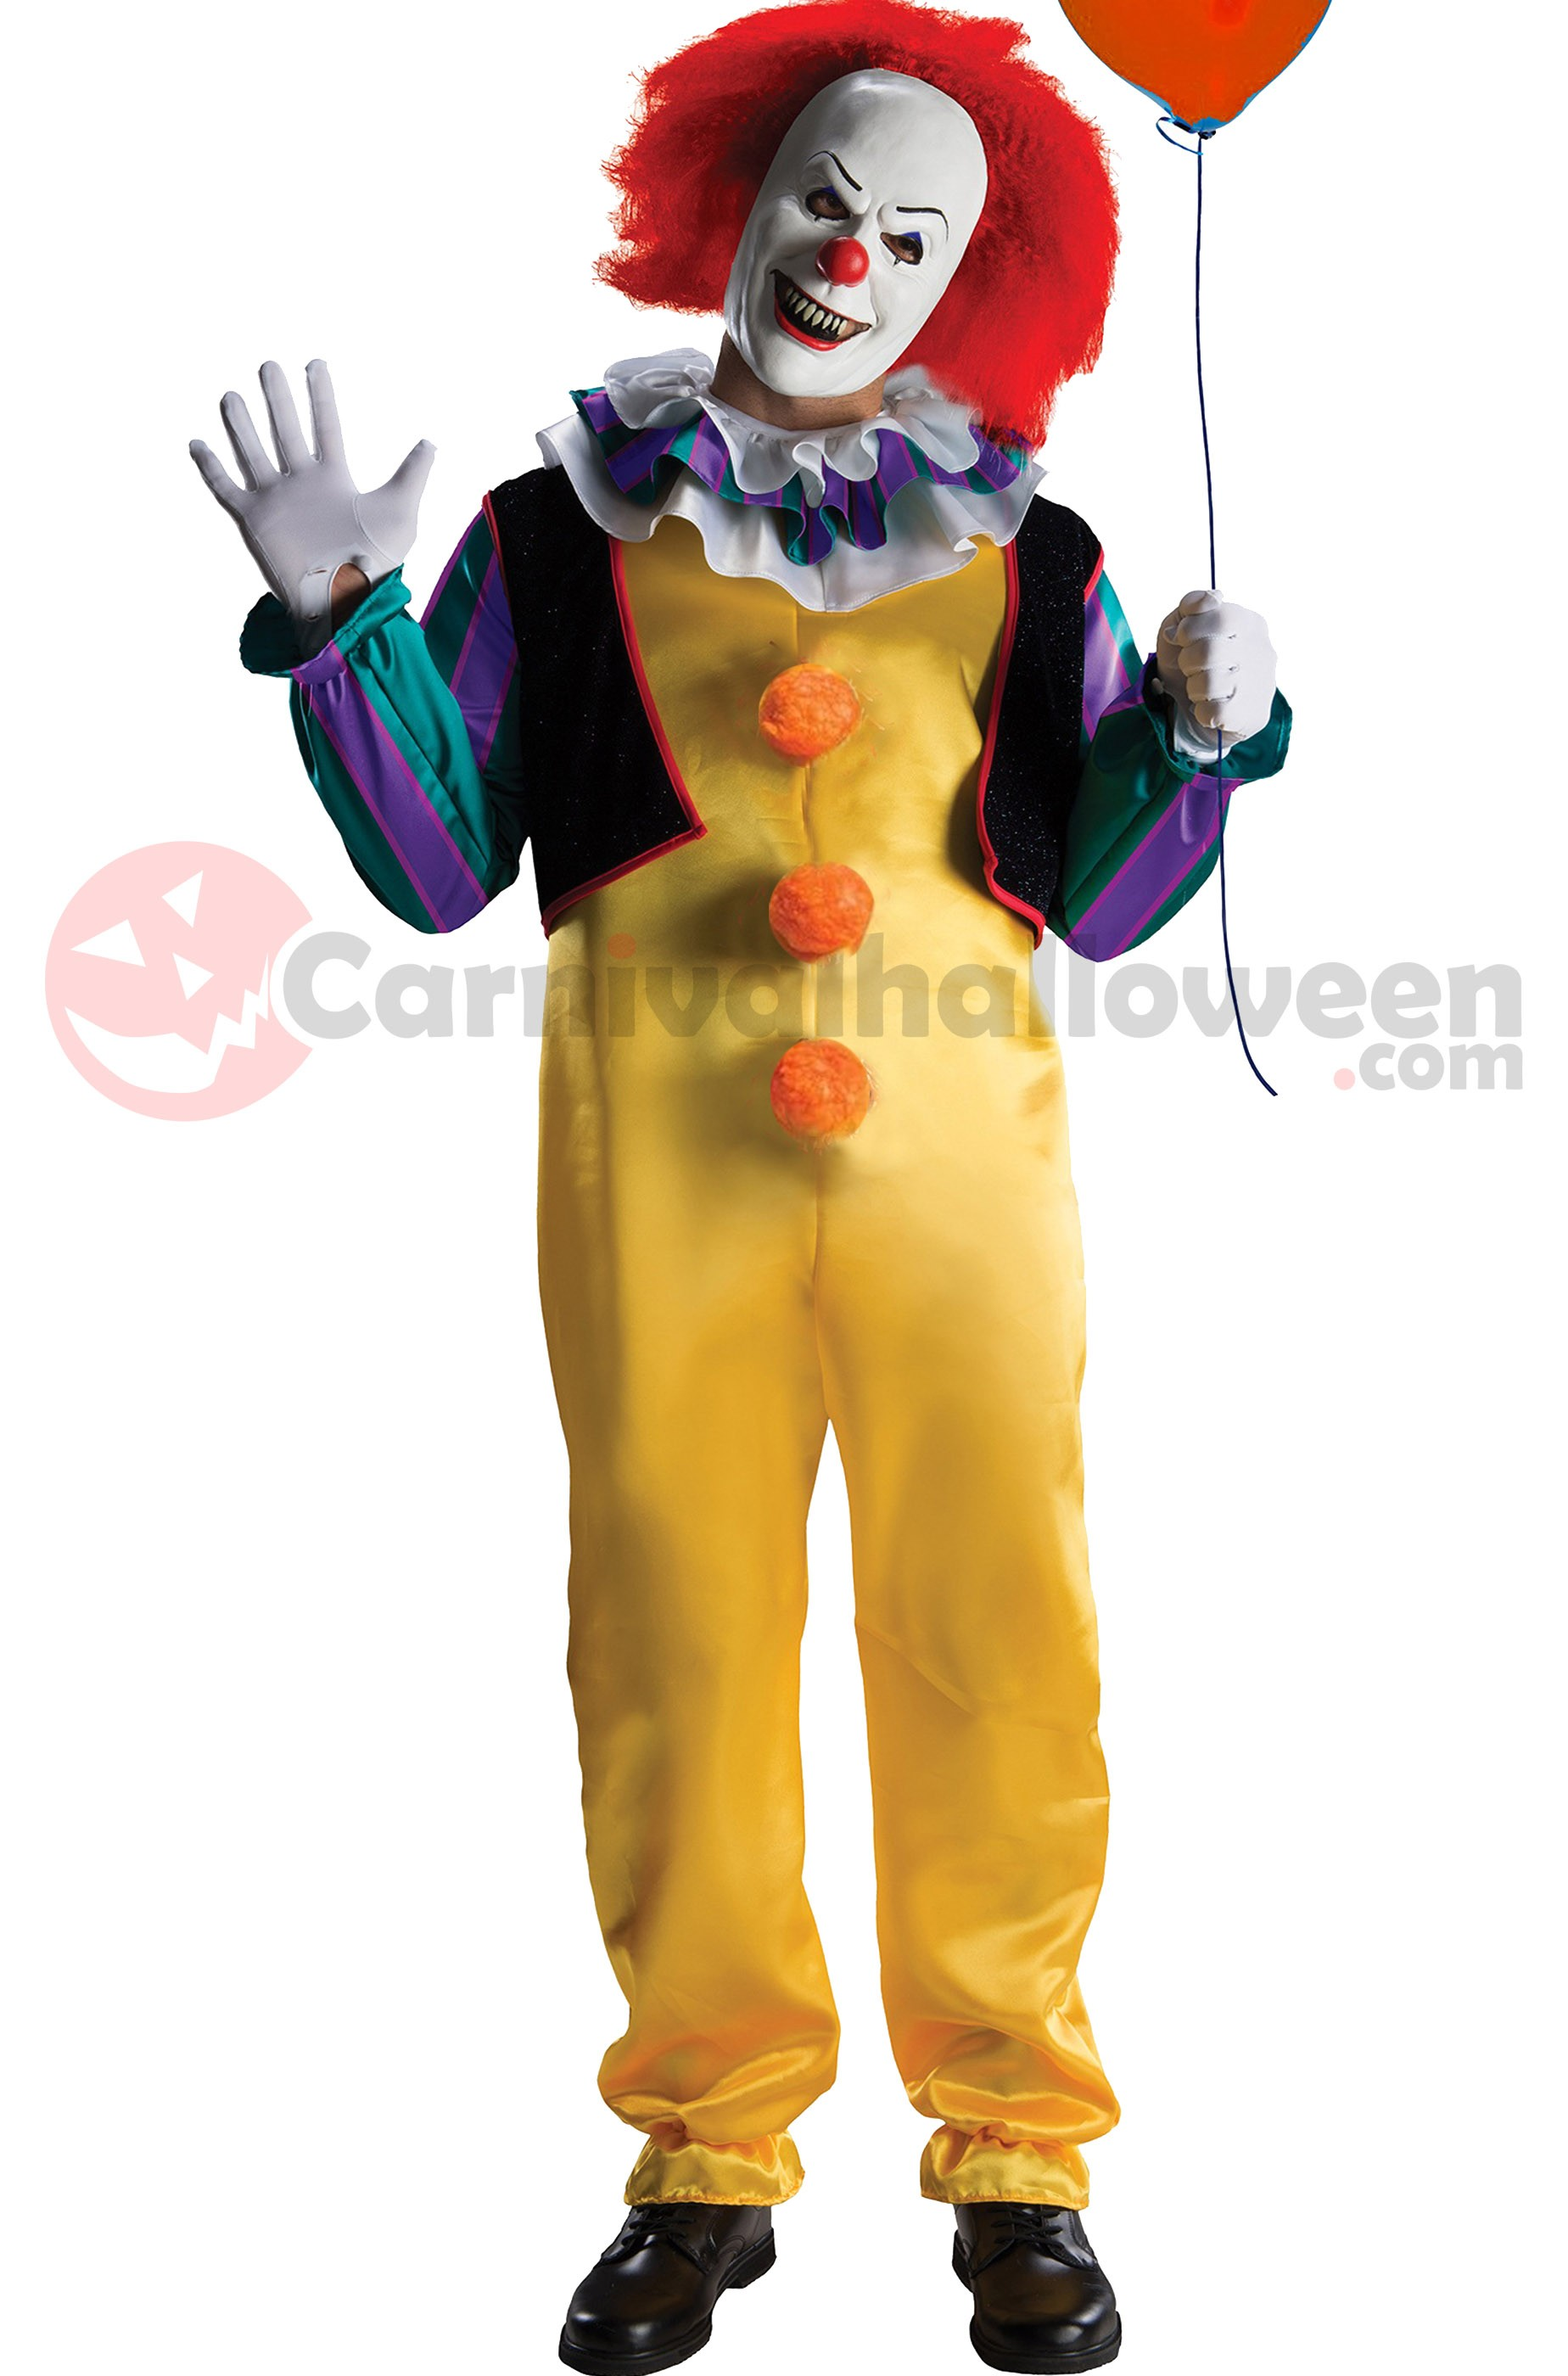 6eb1309001be Clown Horror Costume di IT Pennywise adulto - CarnivalHalloween.com